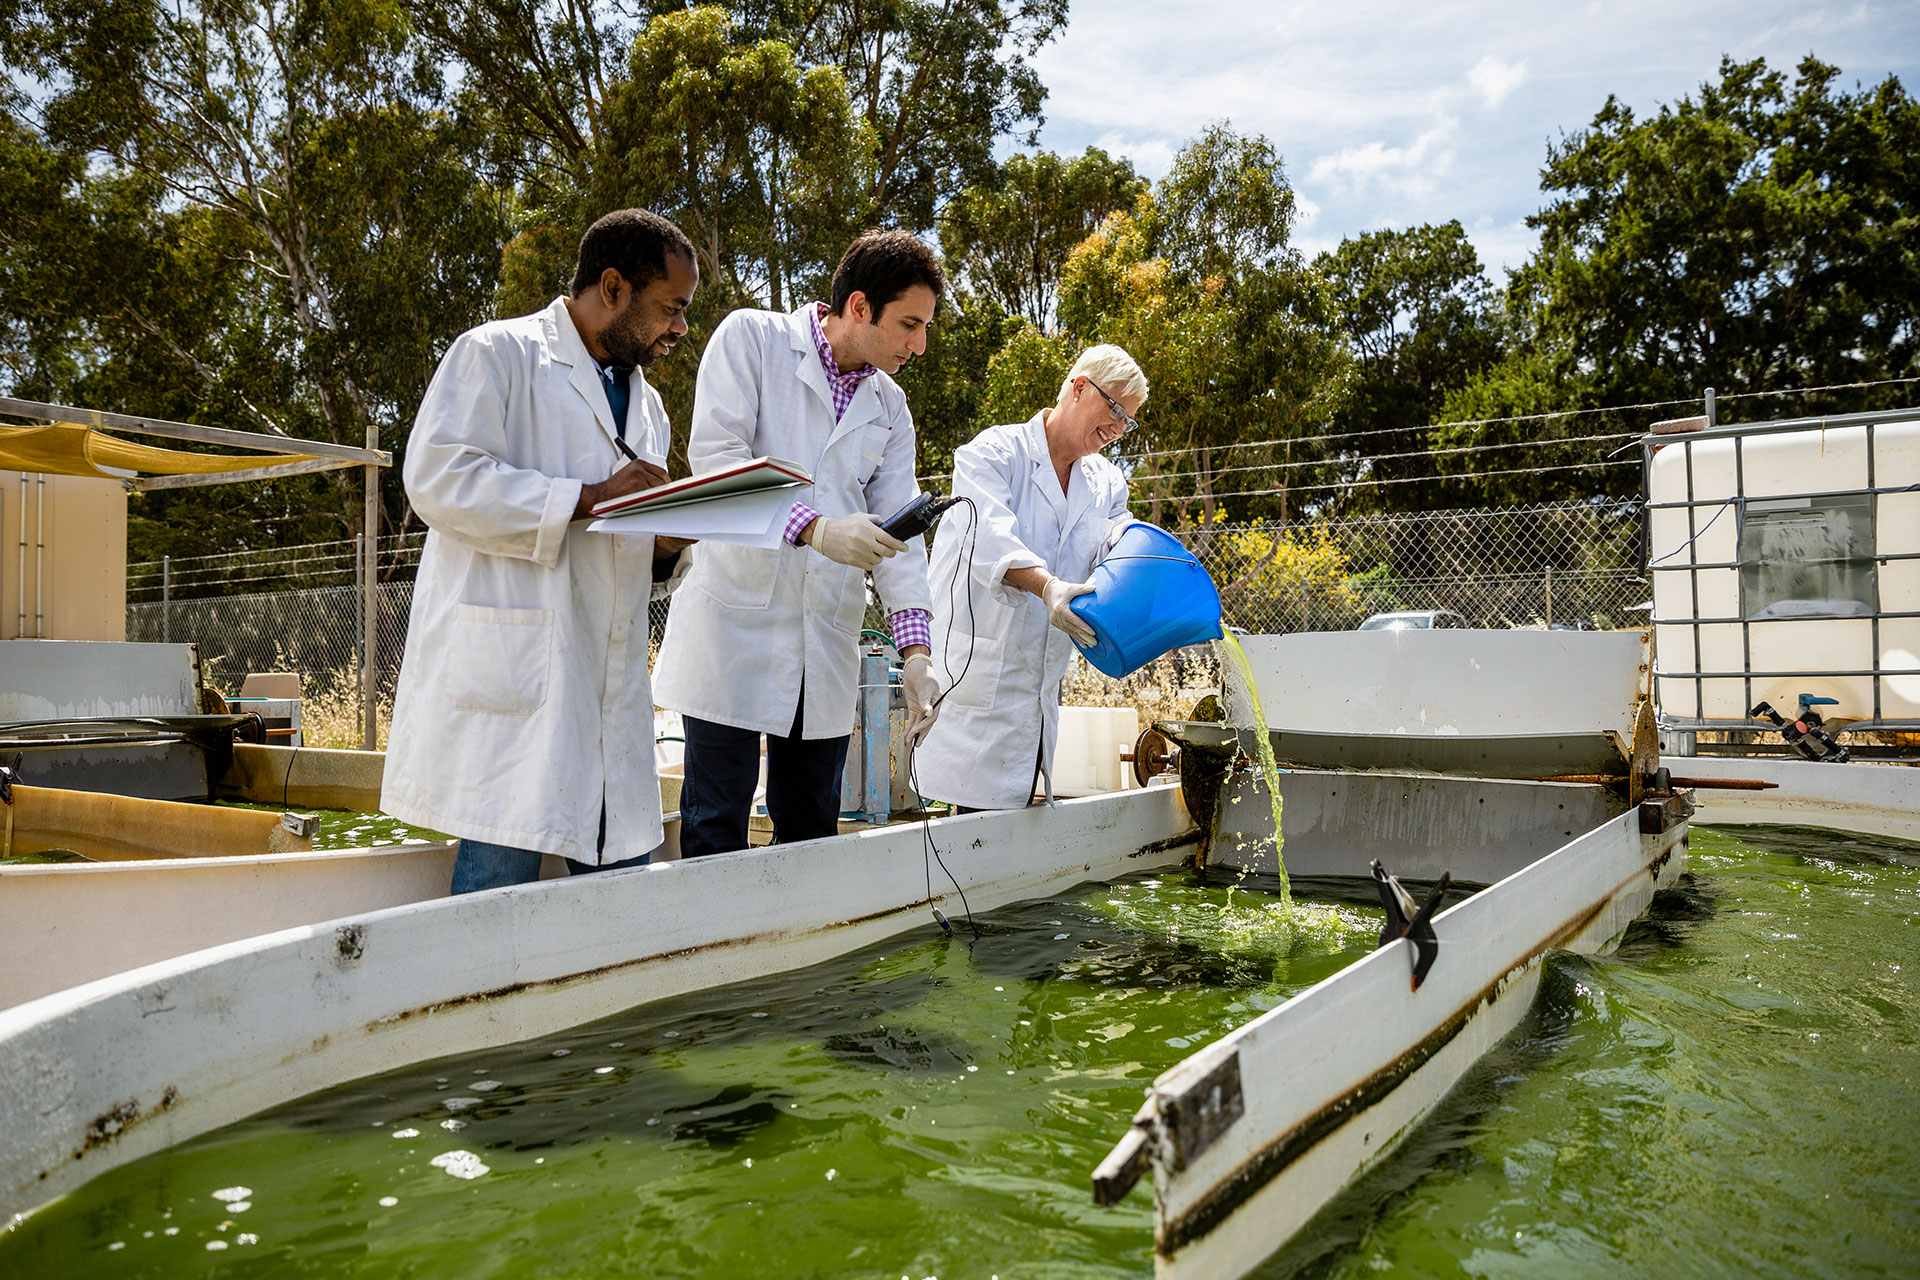 A shot of three scientists working on research outdoors, they are pouring water out of a bucket into a large container of water in Perth, Australia.